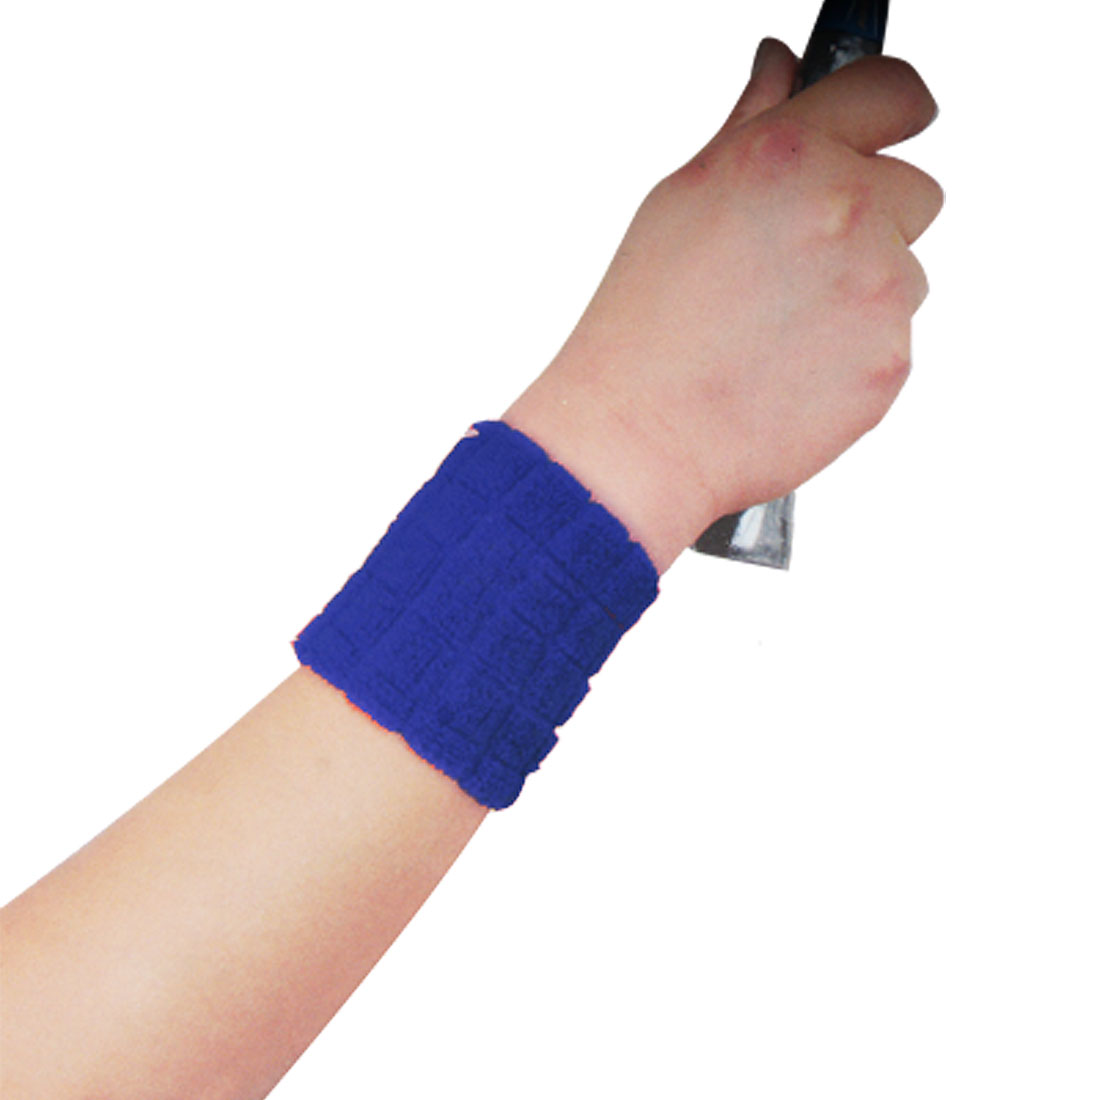 2 Pcs Blue Sports Stretchy Terry Wrist Band Protector